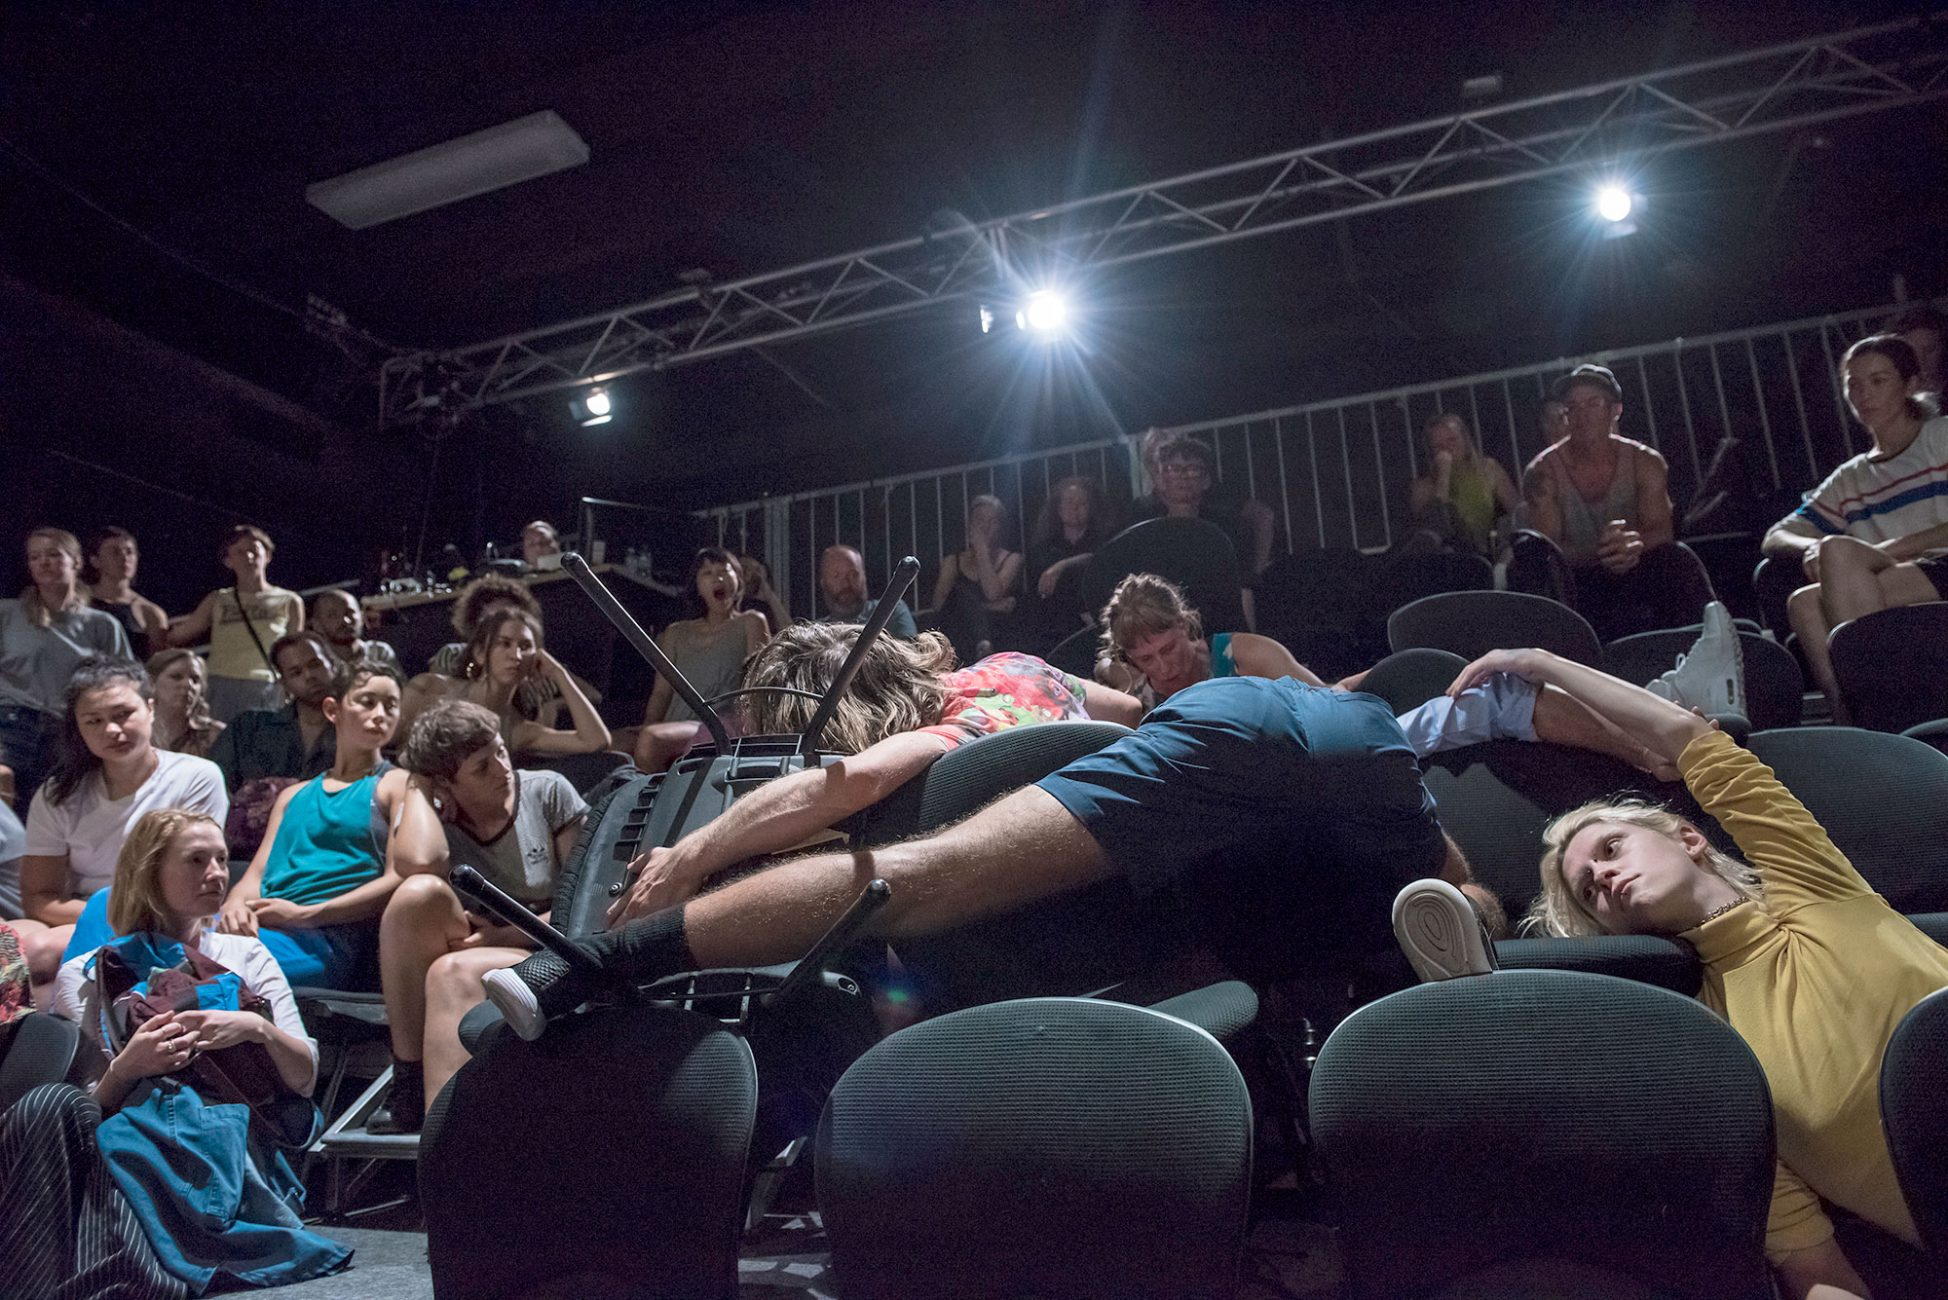 Audience and performers mix in Luke George's Public Action at Keir Choreographic Award